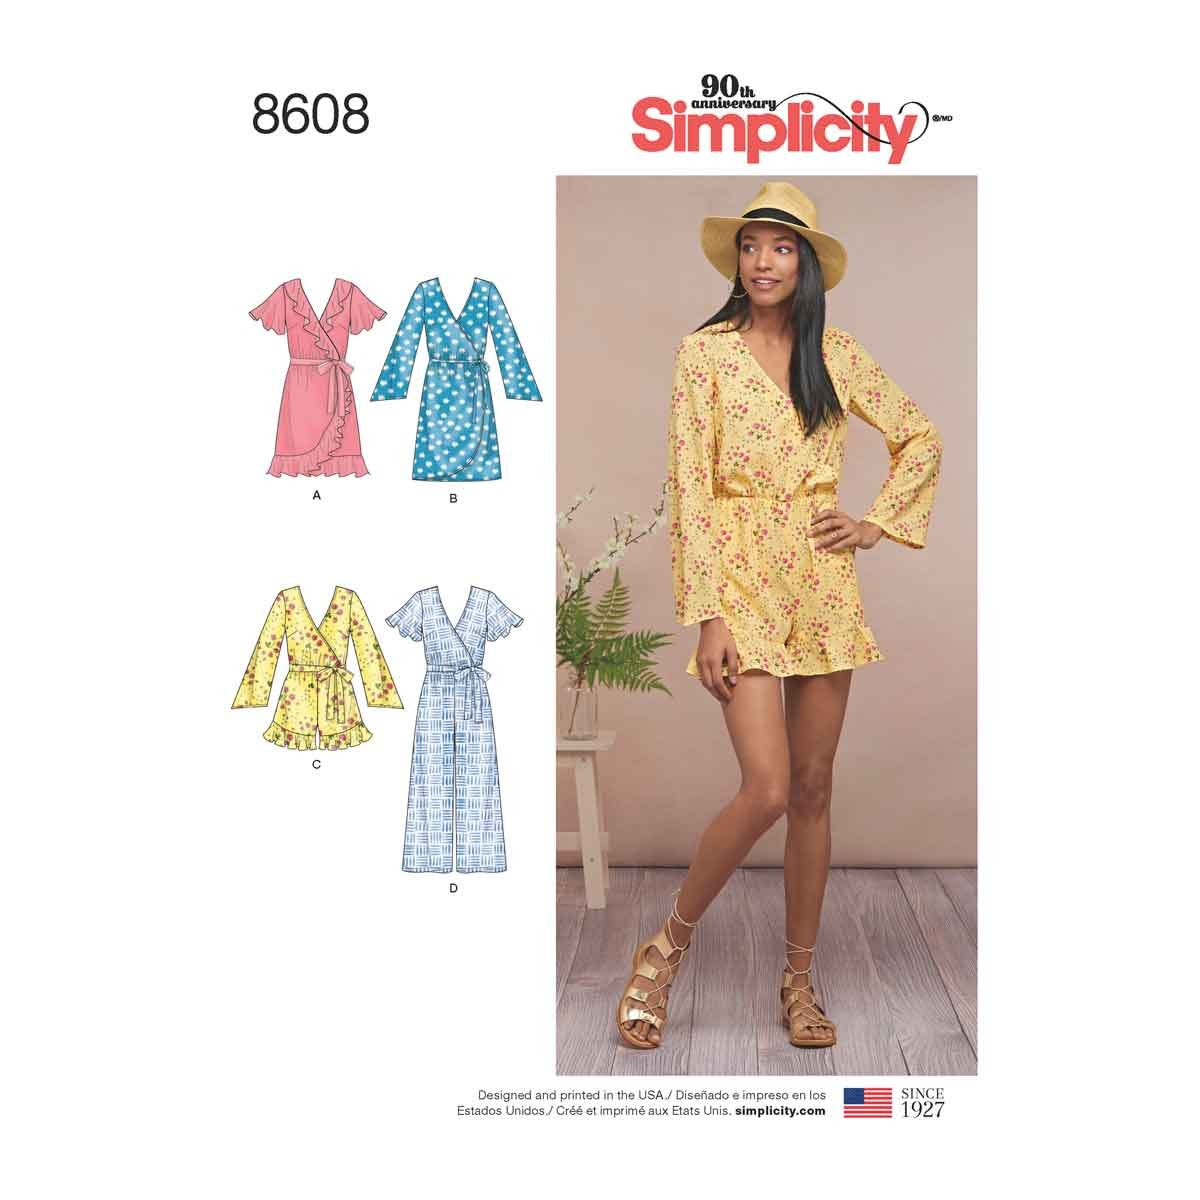 ef20d07ed6f491 Get Quotations · Simplicity Pattern 8608 Misses' Jumpsuit and Dress SIZE  6-14 SEWING PATTERN